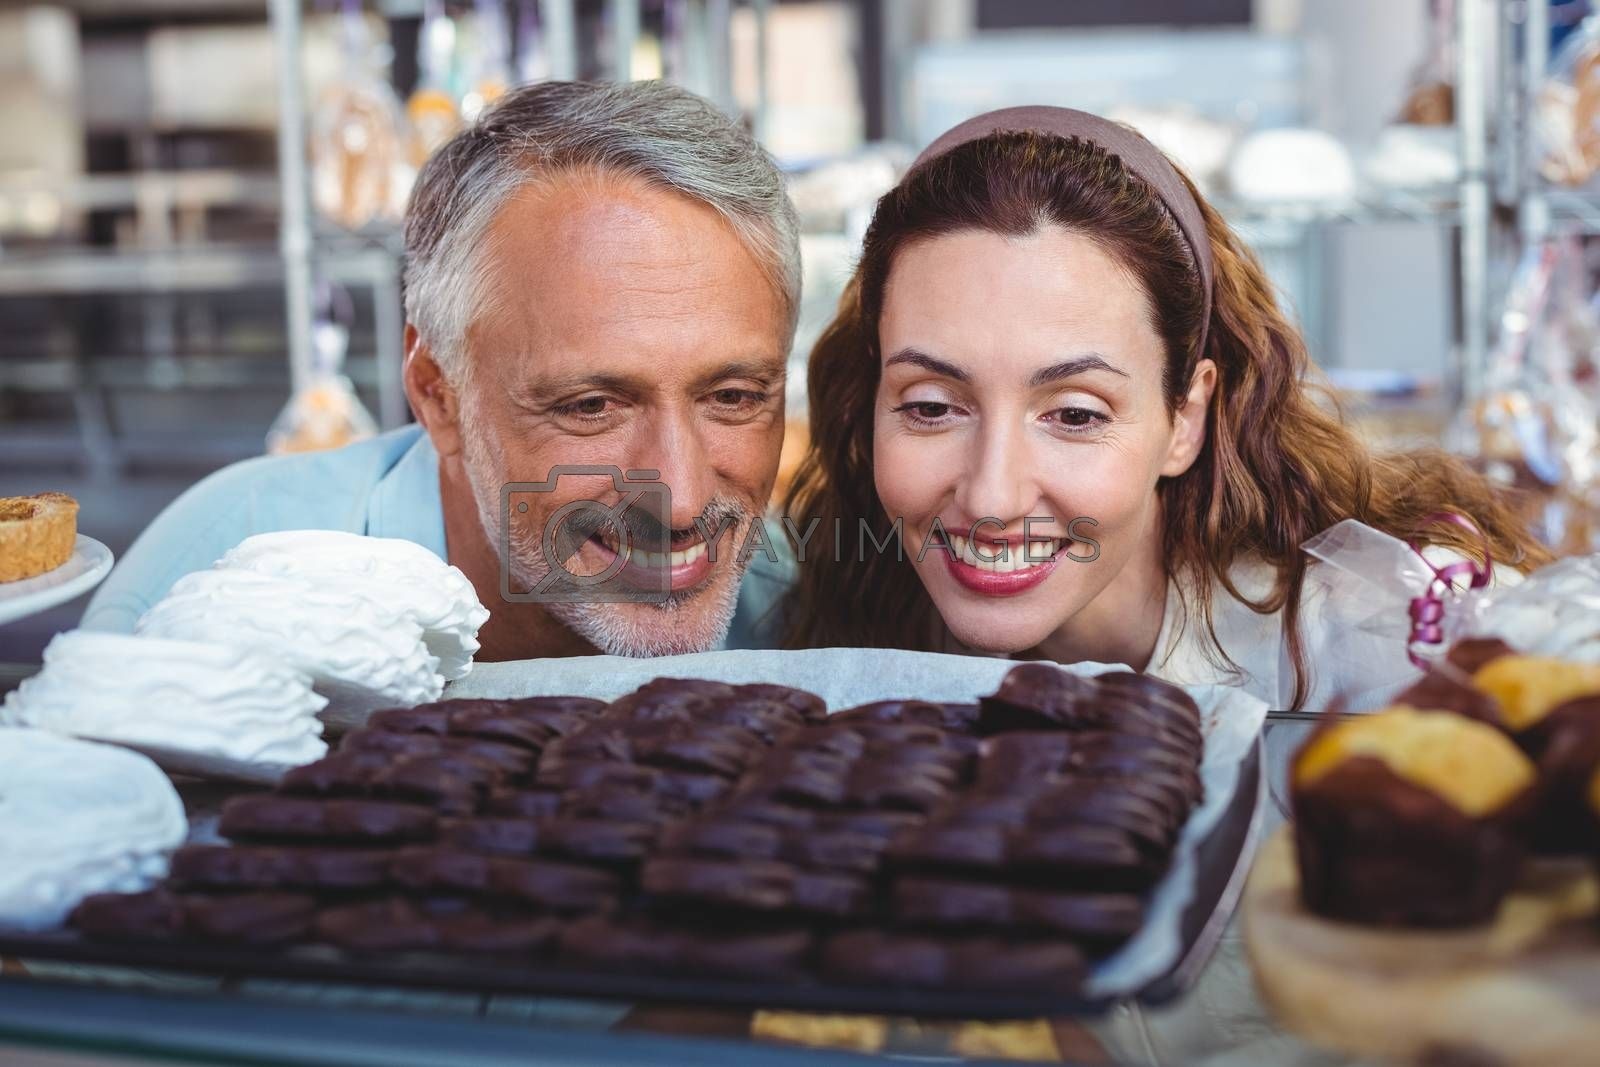 Royalty free image of Happy couple looking at cakes by Wavebreakmedia